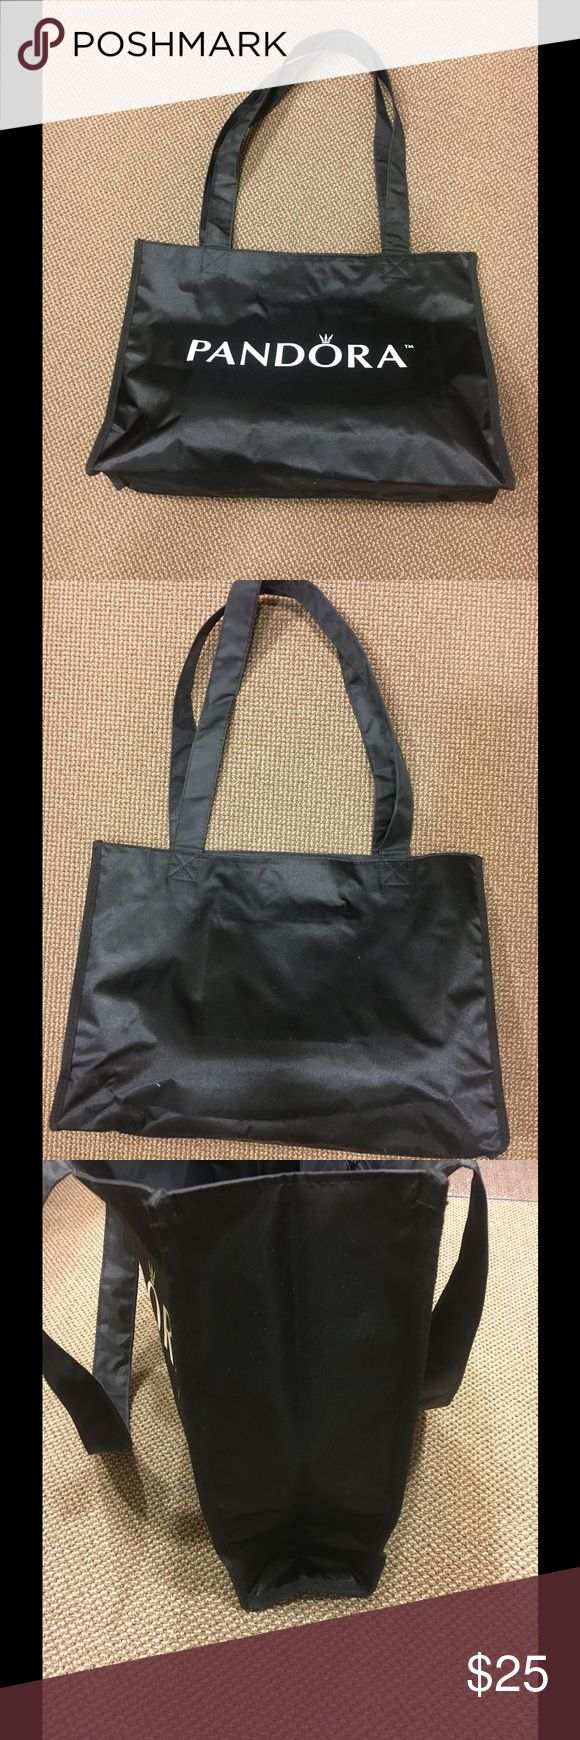 New!!! Large black tote bag w/Pandora TM Large black tote bag w/ Pandora TM . Inside zipper pocket . Folds easily so you can pack in a suitcase for those vacations. Great for shopping sprees, beach trips, pool. Lots of room and will wipe of easily Bags